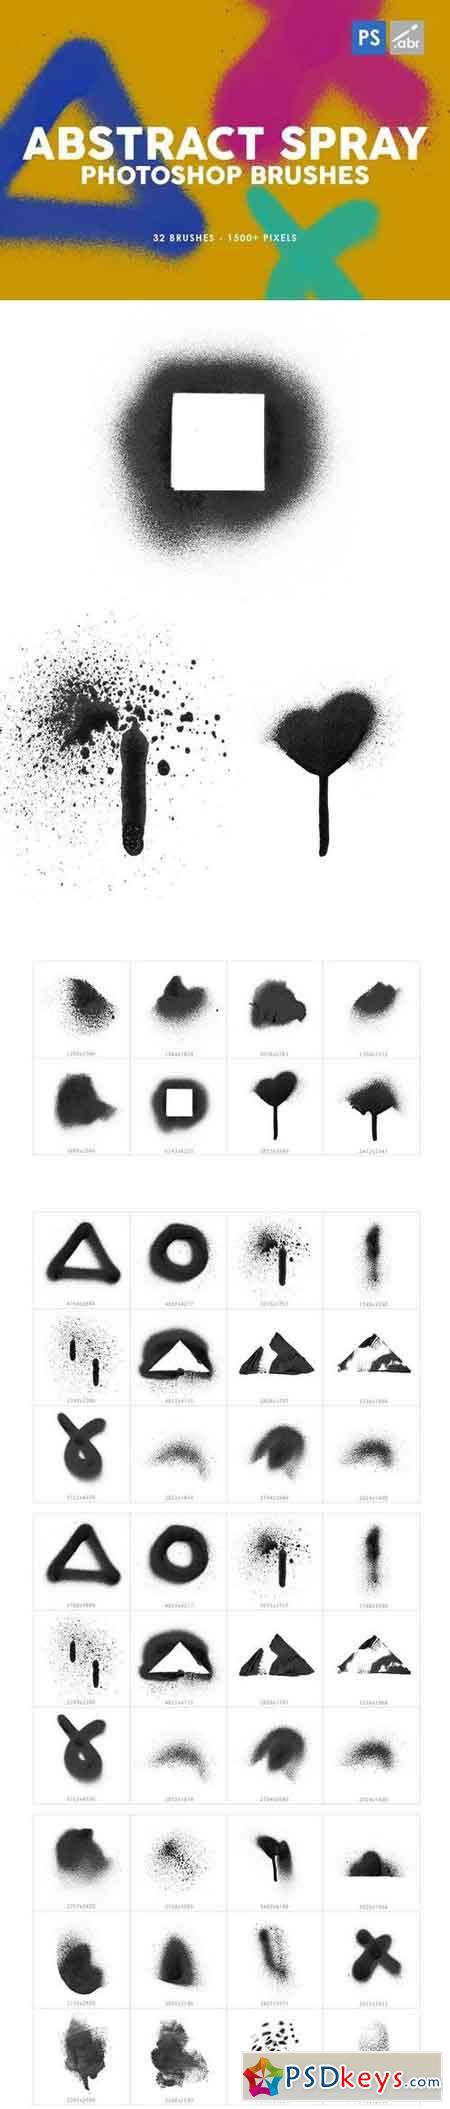 32 Abstract Spray Photoshop Stamp Brushes